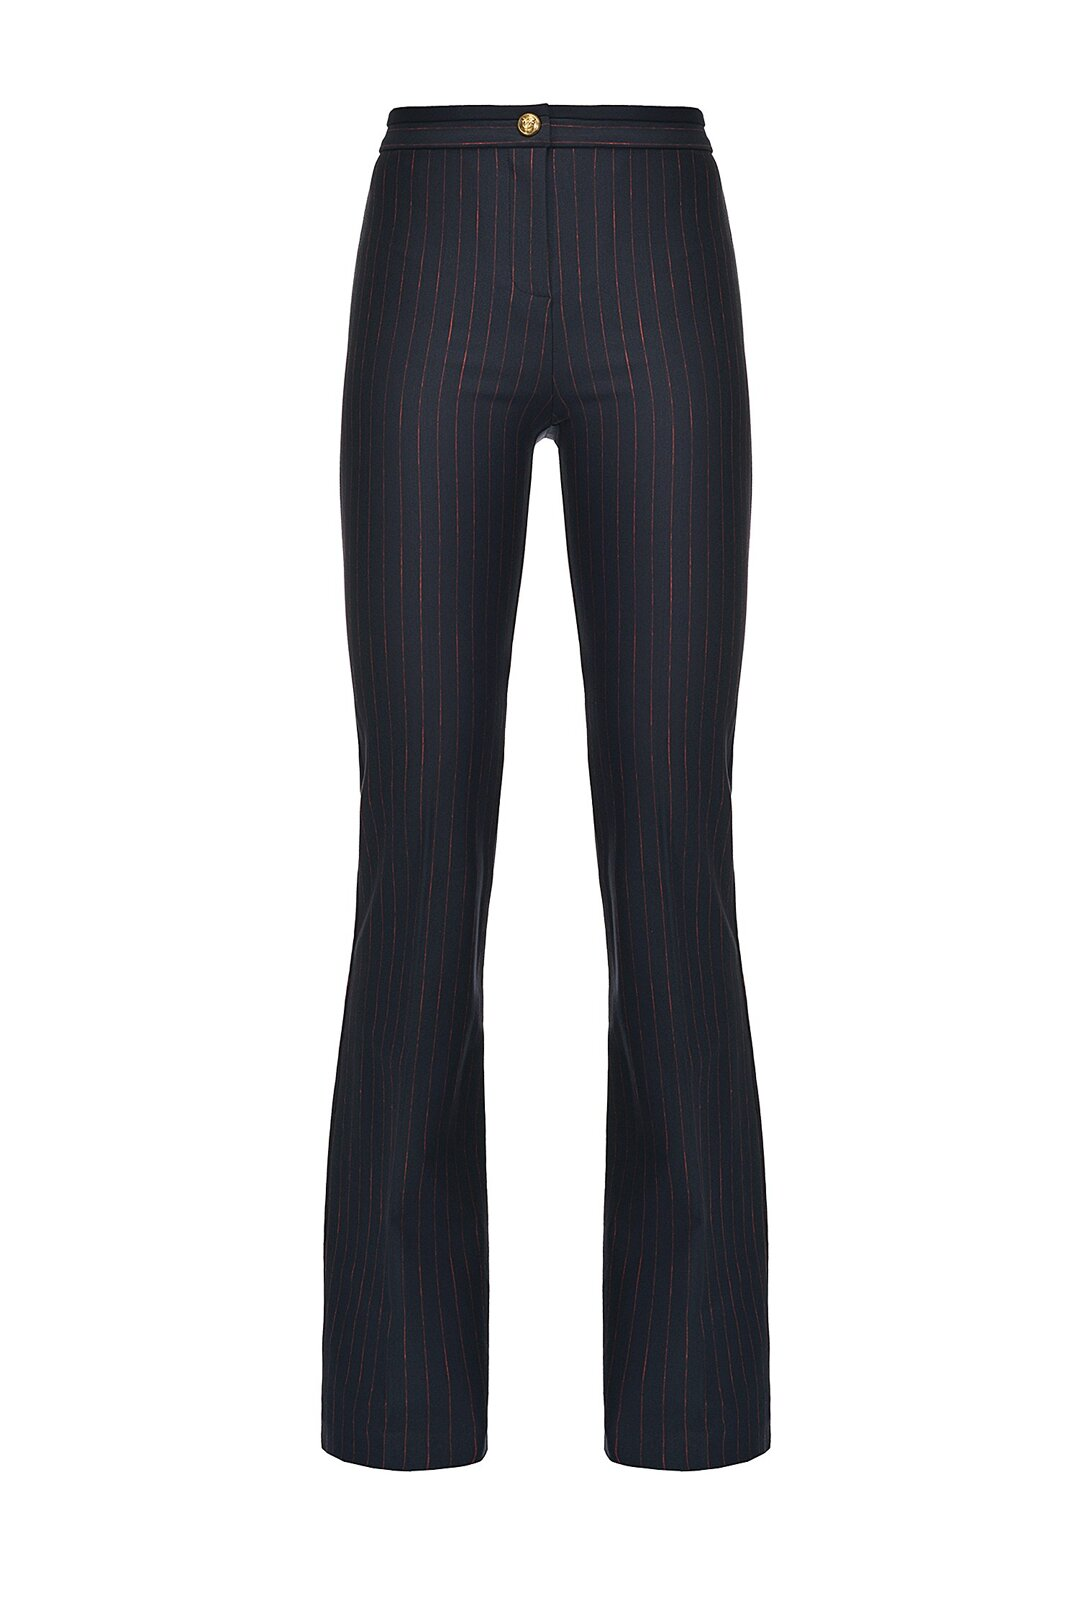 Flared Pinstripe Trousers - Pinko